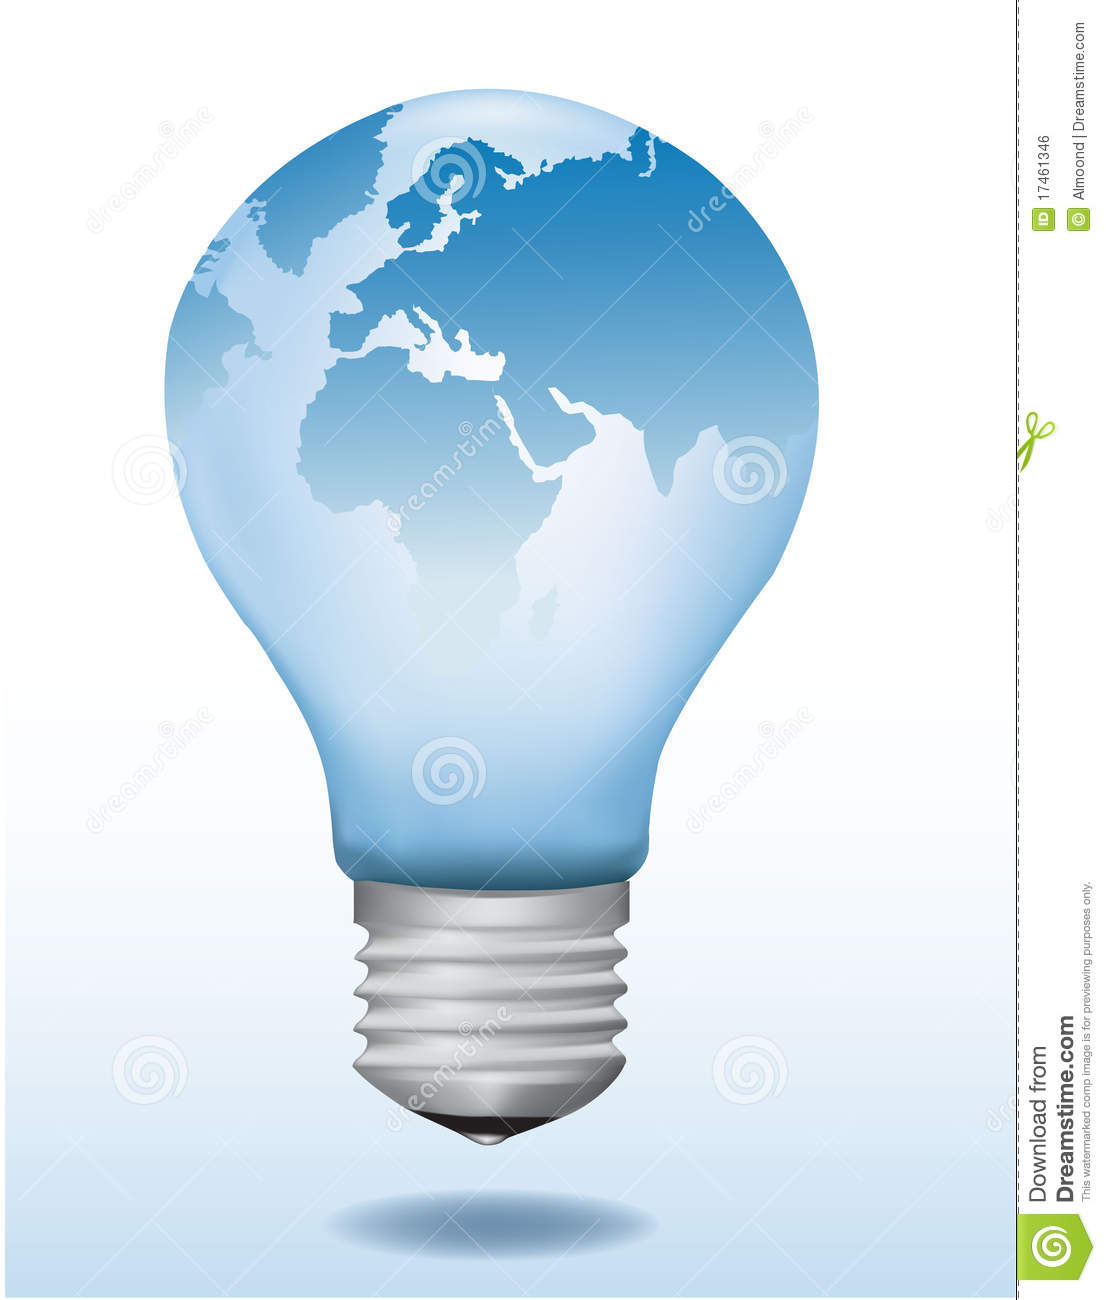 World In A Bulb Light bulb with world map on